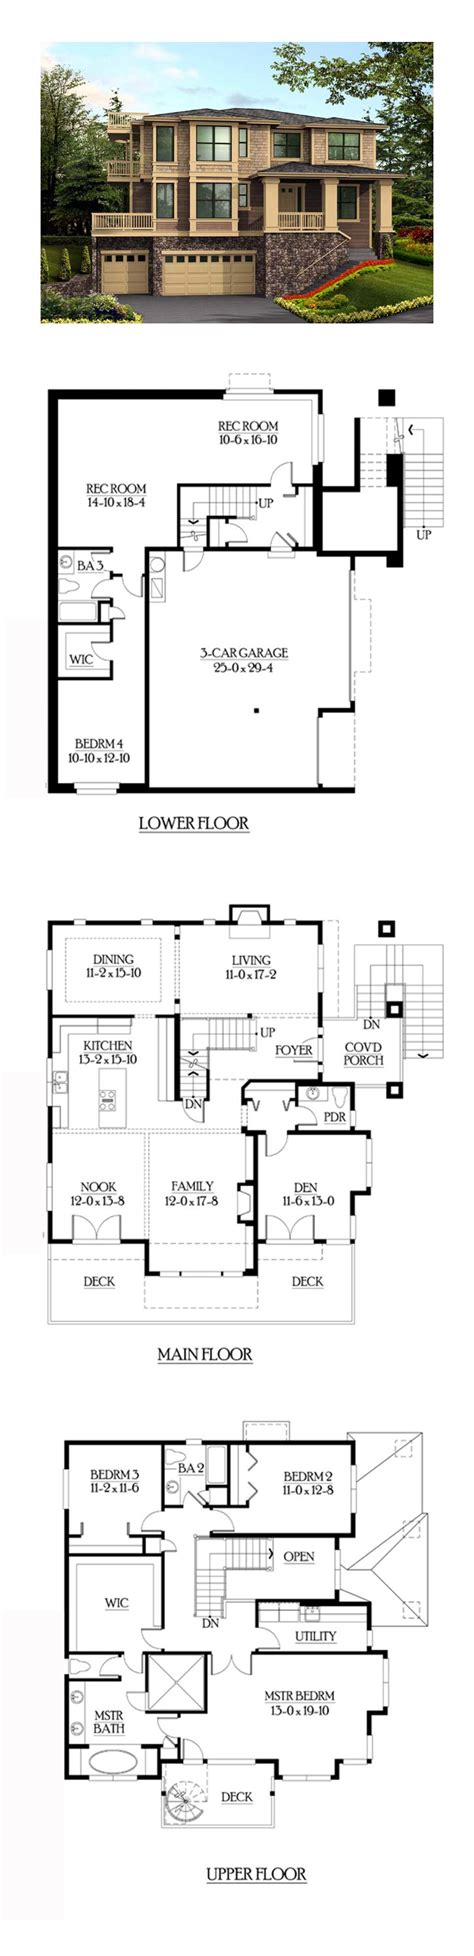 house plans with basements best 25 basement house plans ideas on house